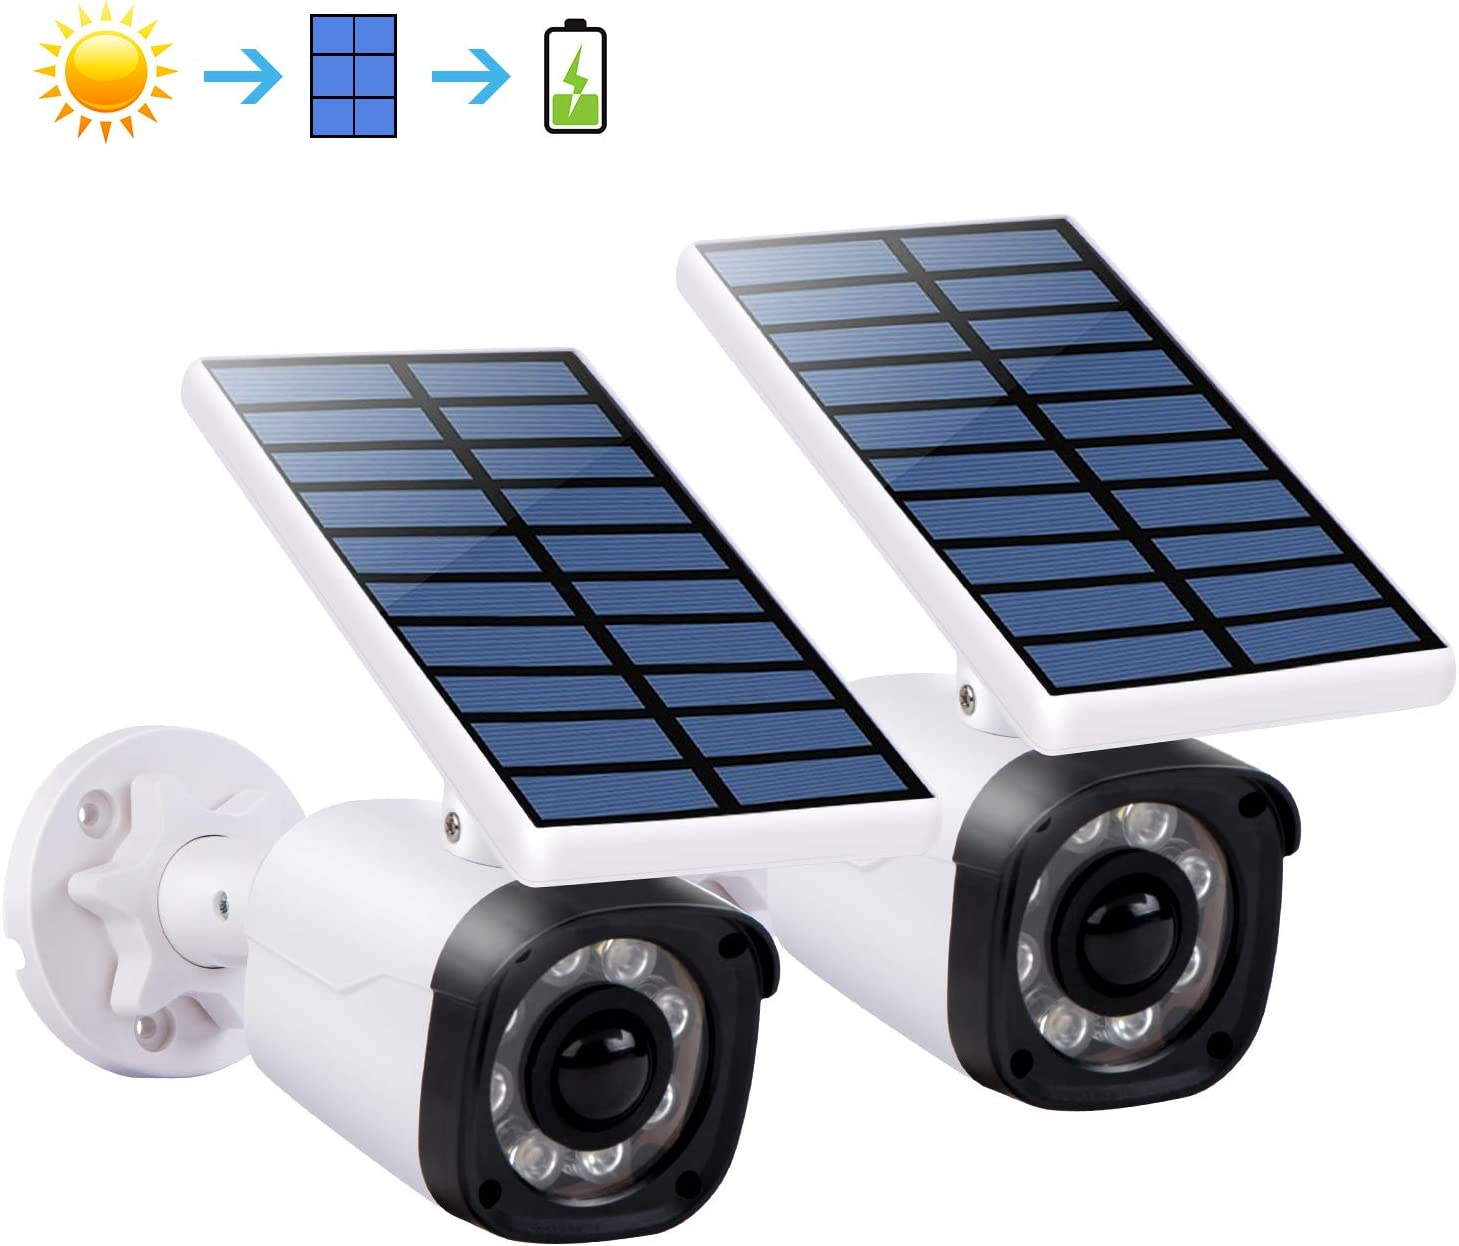 Amazon coupon code for Solar Motion Sensor Light Outdoor Wireless